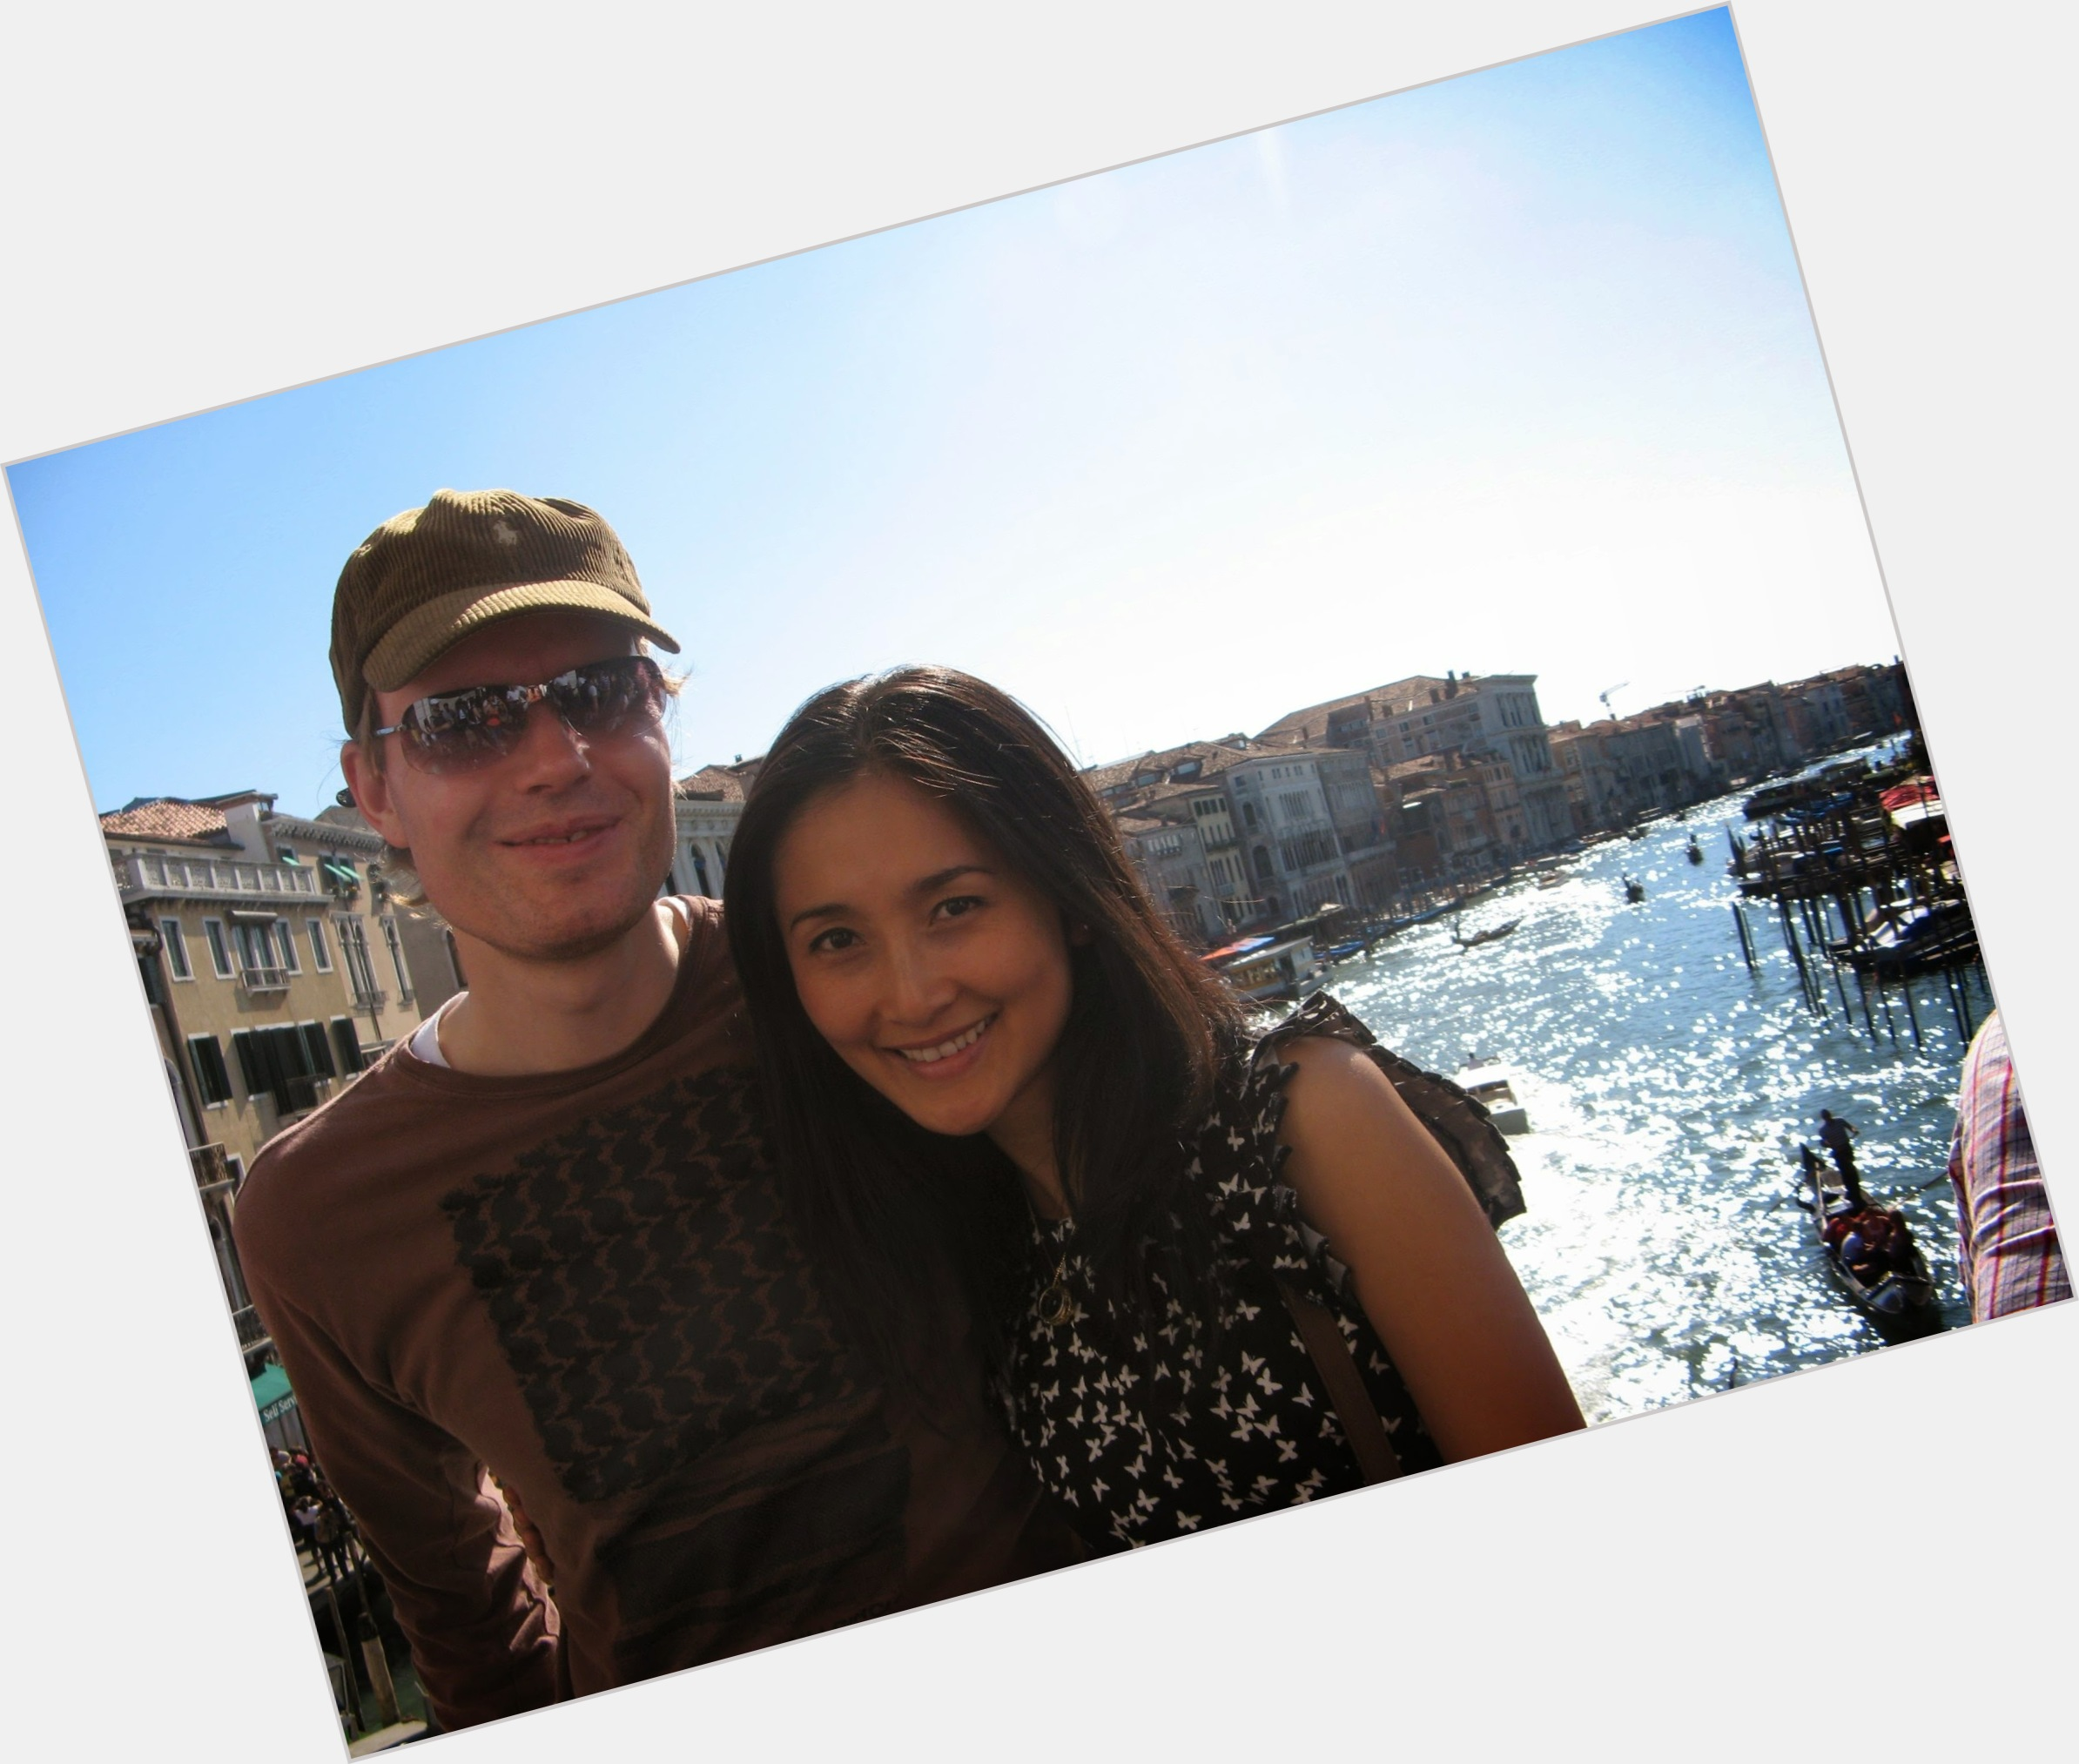 pender jewish personals Dating hiv personals jewish personals - if you are looking for girlfriend or boyfriend, register on this dating site and start chatting you will meet interesting people and find your love.